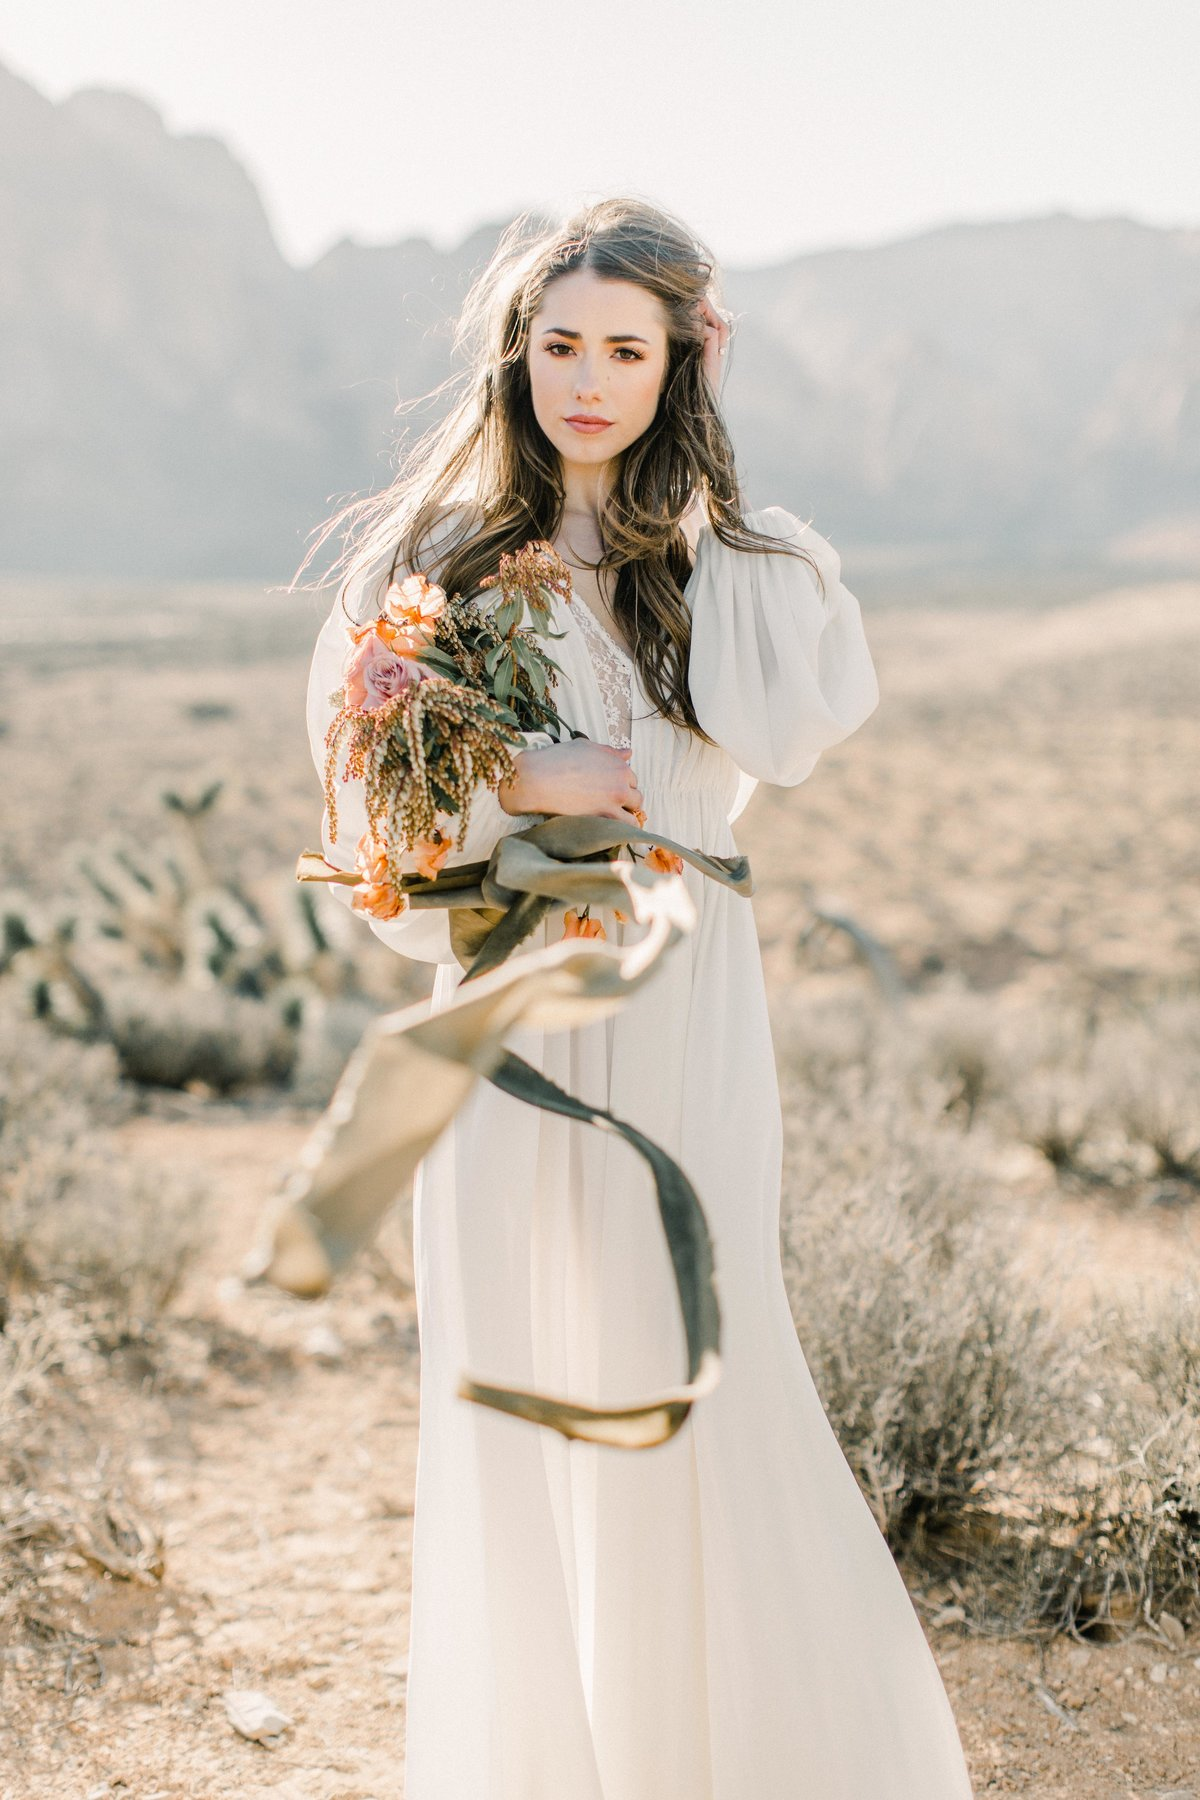 Babsie-Ly-Photography-Red-Rock-Canyon-Las-Vegas-Wedding-Elopement-Fine-Art-Film-domenica-domenica-robe-004